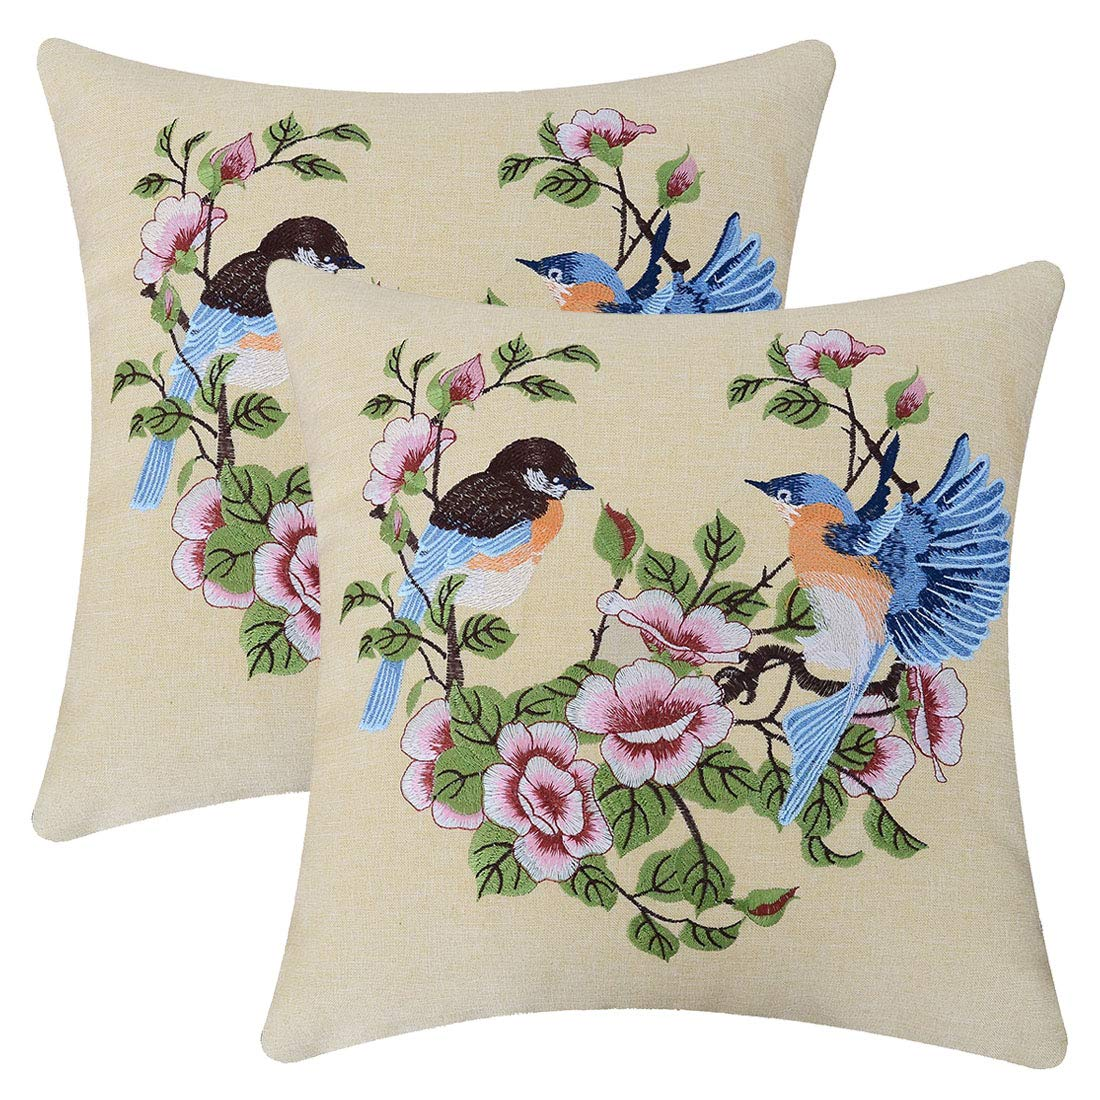 Embroidered bird and floral spring floral pillow cover for your home aff link